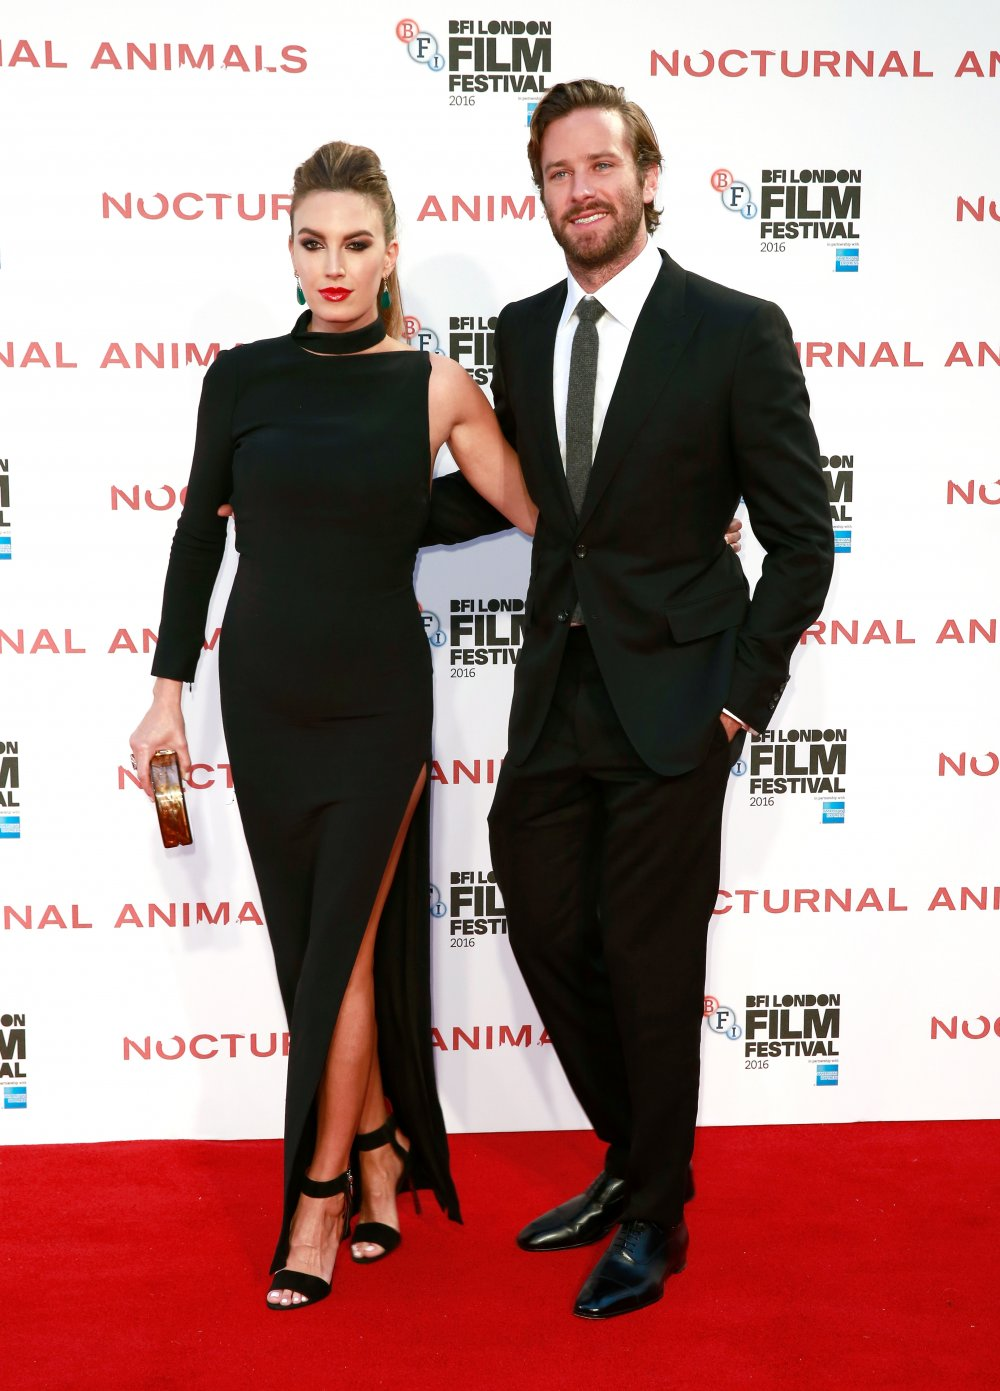 Elizabeth Chambers and Armie Hammer attend the Nocturnal Animals Headline Gala during the 60th BFI London Film Festival